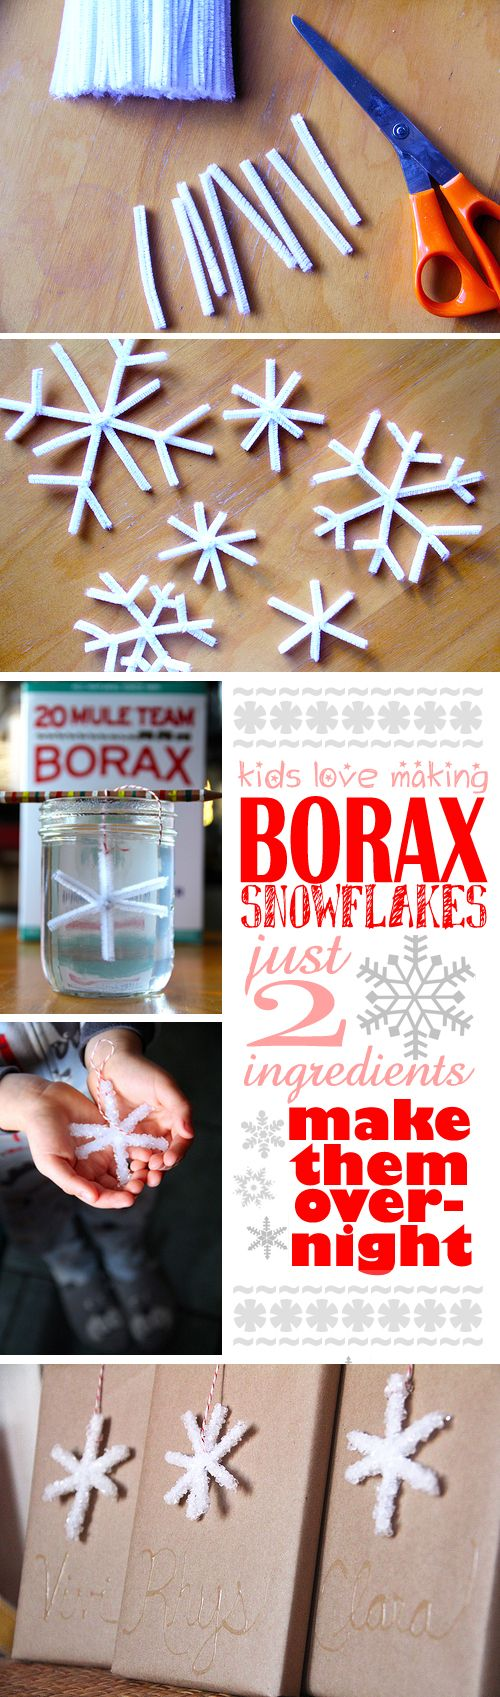 Easy Borax snowflakes Perfect advent calendar craft